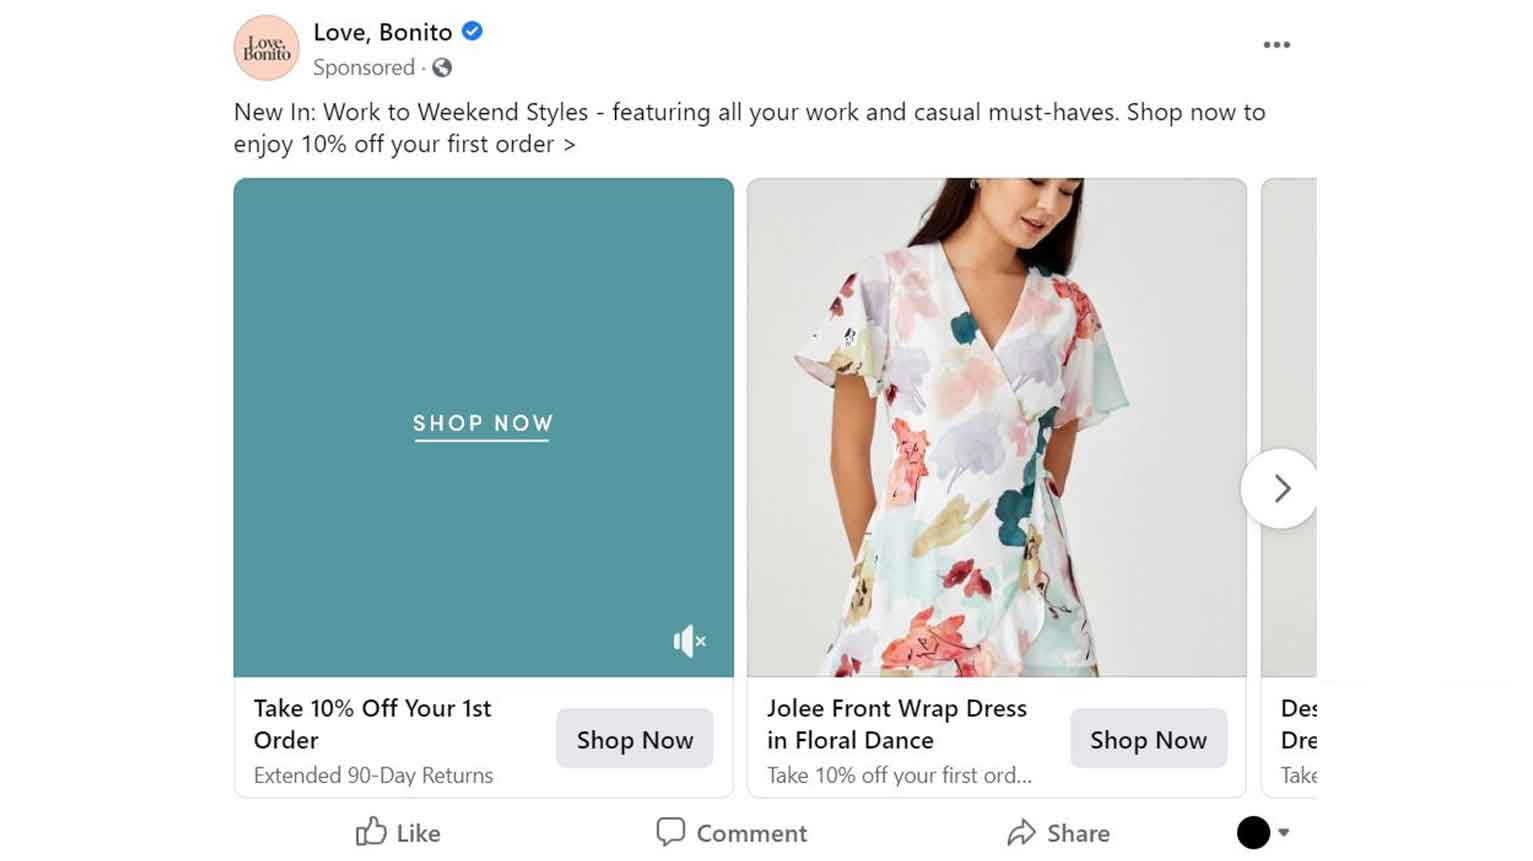 Here's an example of sponsored content from the Love, Bonito fashion brand.